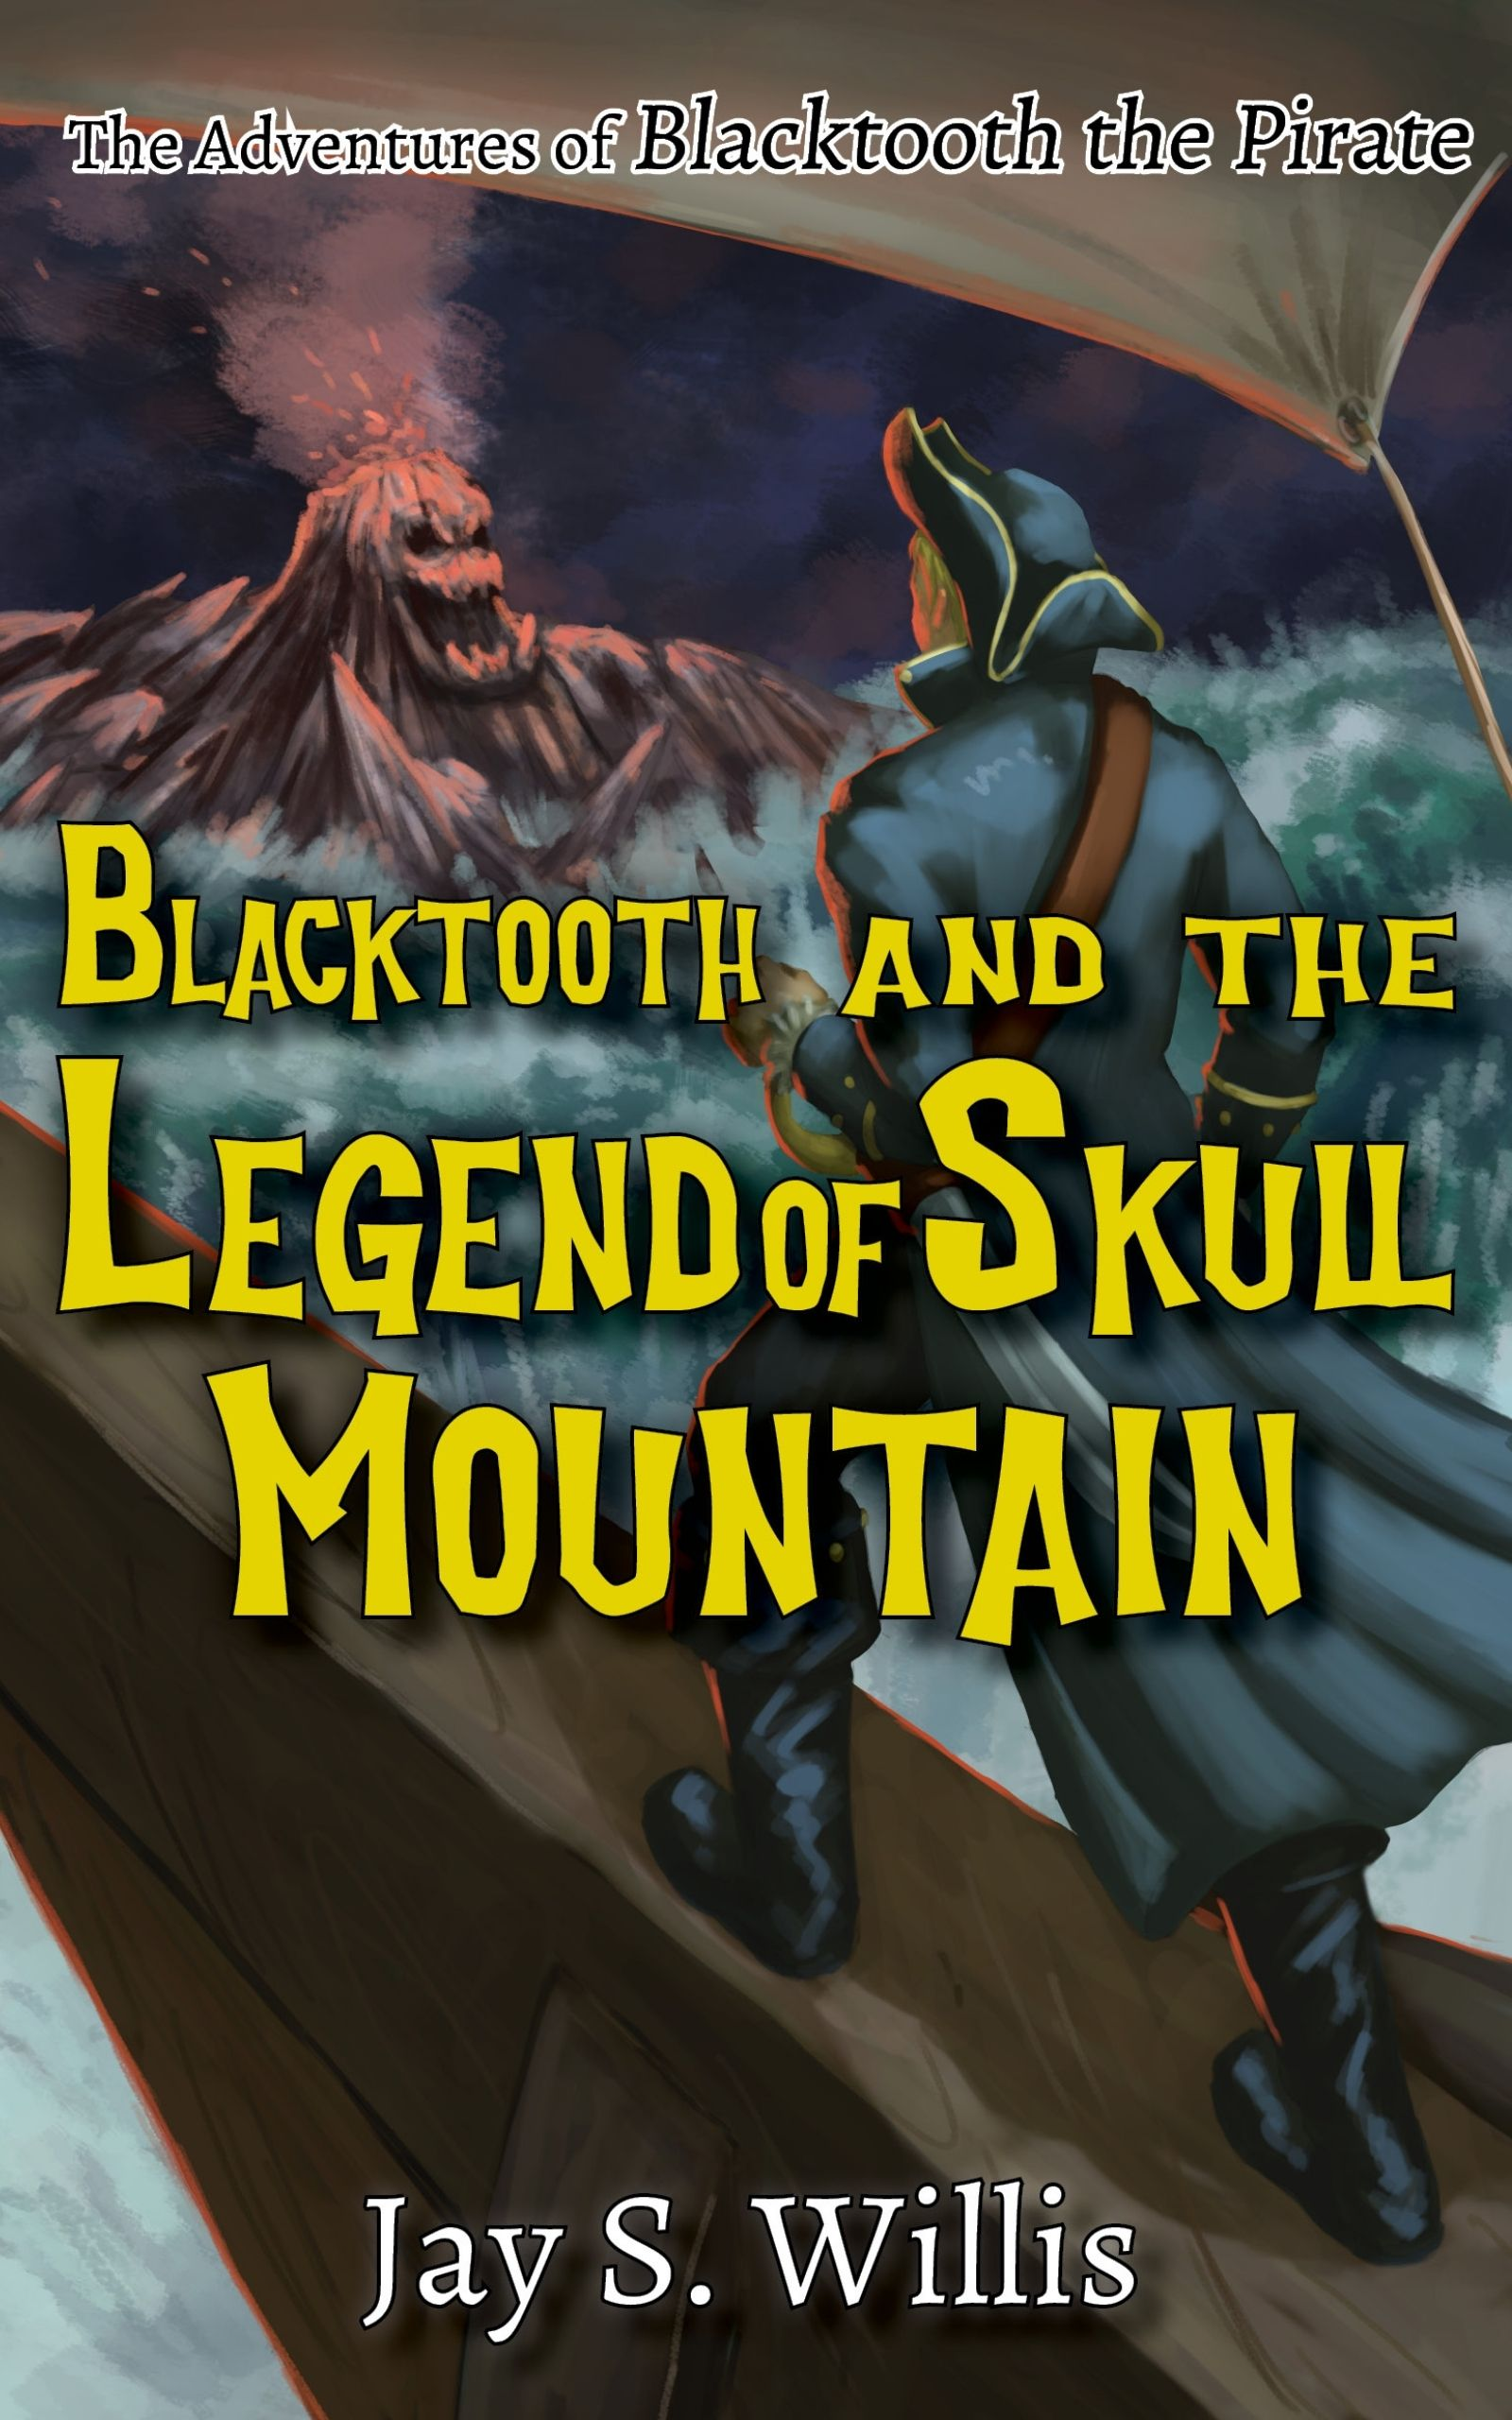 Legend of skull mountain ebook revision 3 13 21